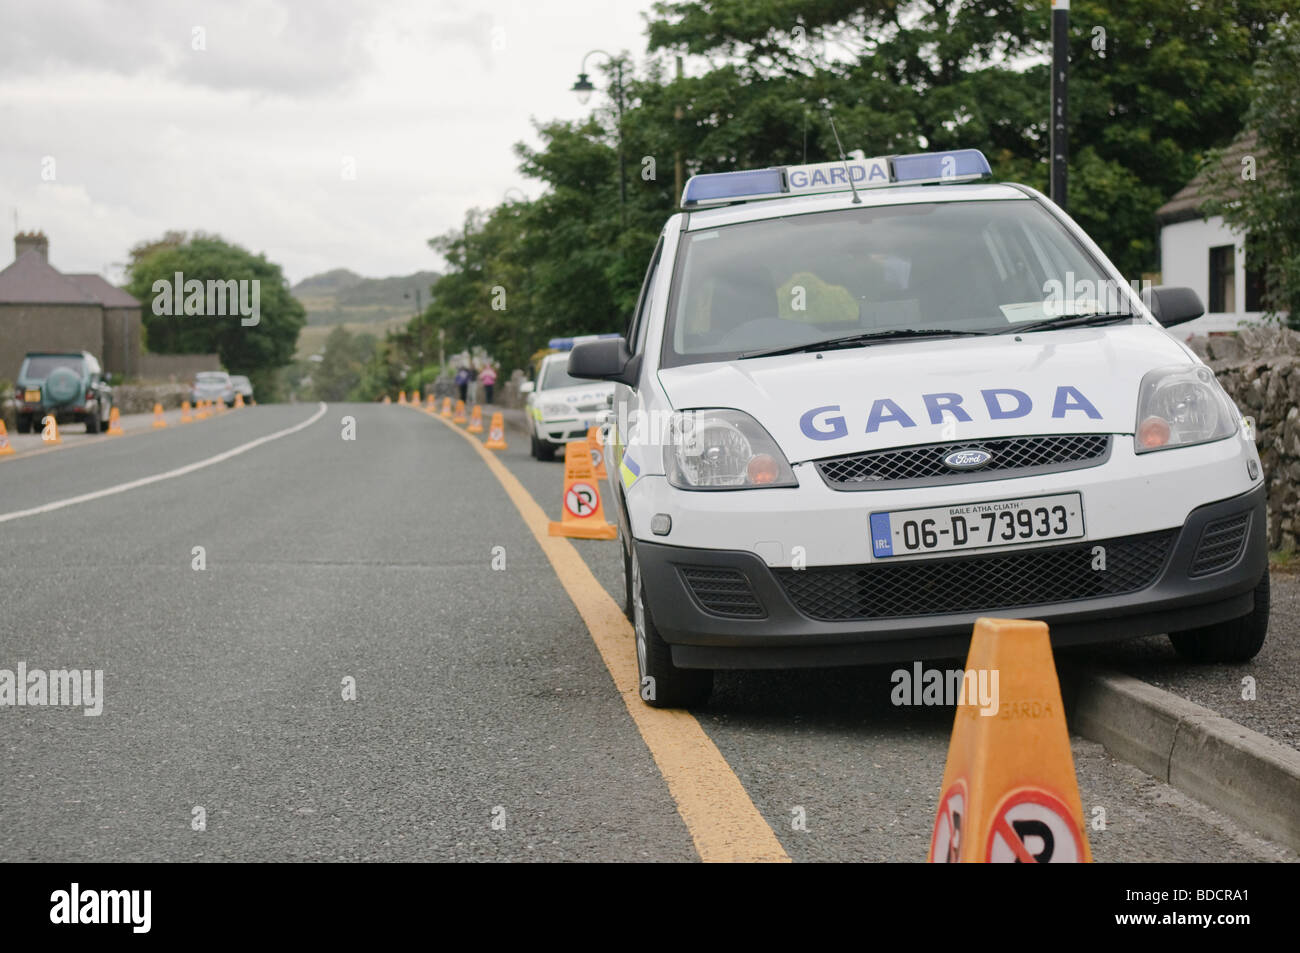 Two Irish Garda police cars parked on a no parking zone with no-parking traffic cones. - Stock Image